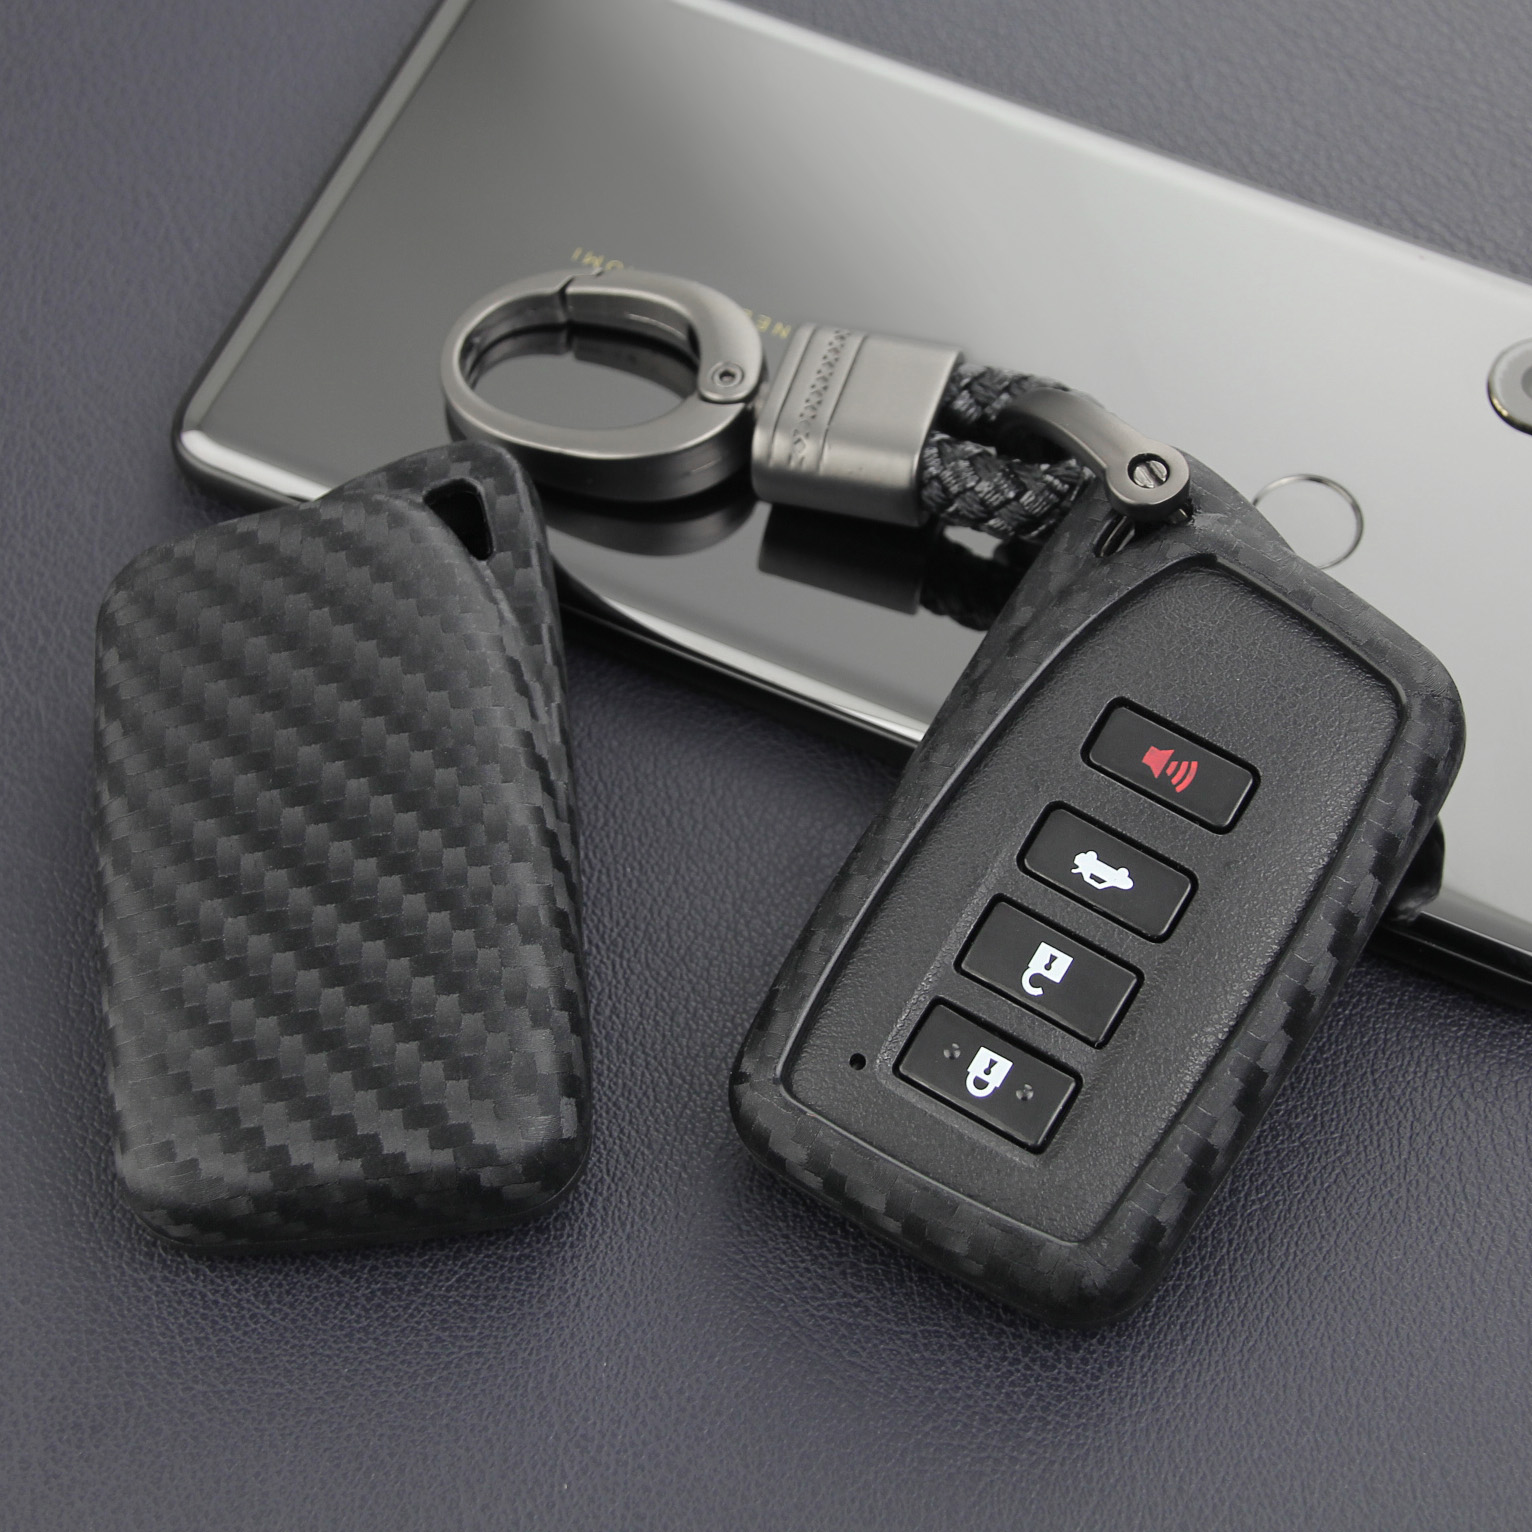 For <font><b>Lexus</b></font> IS ES NX RX <font><b>GS</b></font> LX RC Carbon Fiber Car Key Fob Case Cover Chain Ring Accessories 200 260 300 <font><b>350</b></font> 450 570 <font><b>F</b></font> <font><b>Sport</b></font> image